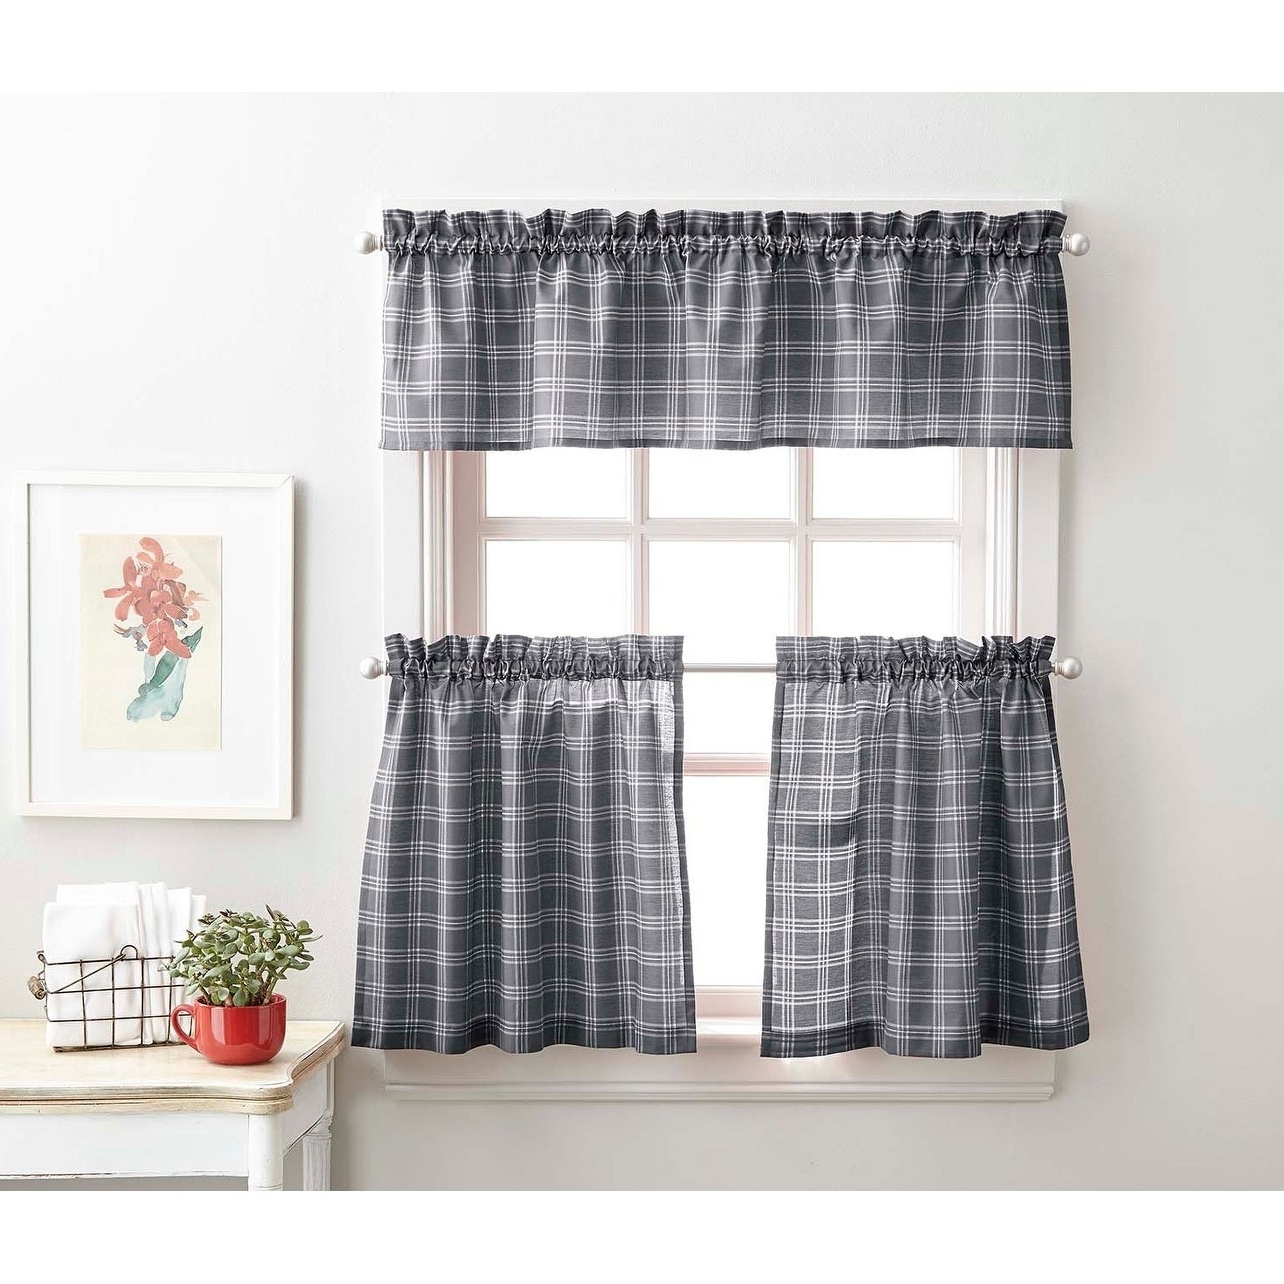 Scroll Leaf 3 Piece Curtain Tier And Valance Sets Intended For Recent Details About Lodge Plaid 3 Piece Kitchen Curtain Tier And Valance Set – (View 15 of 20)